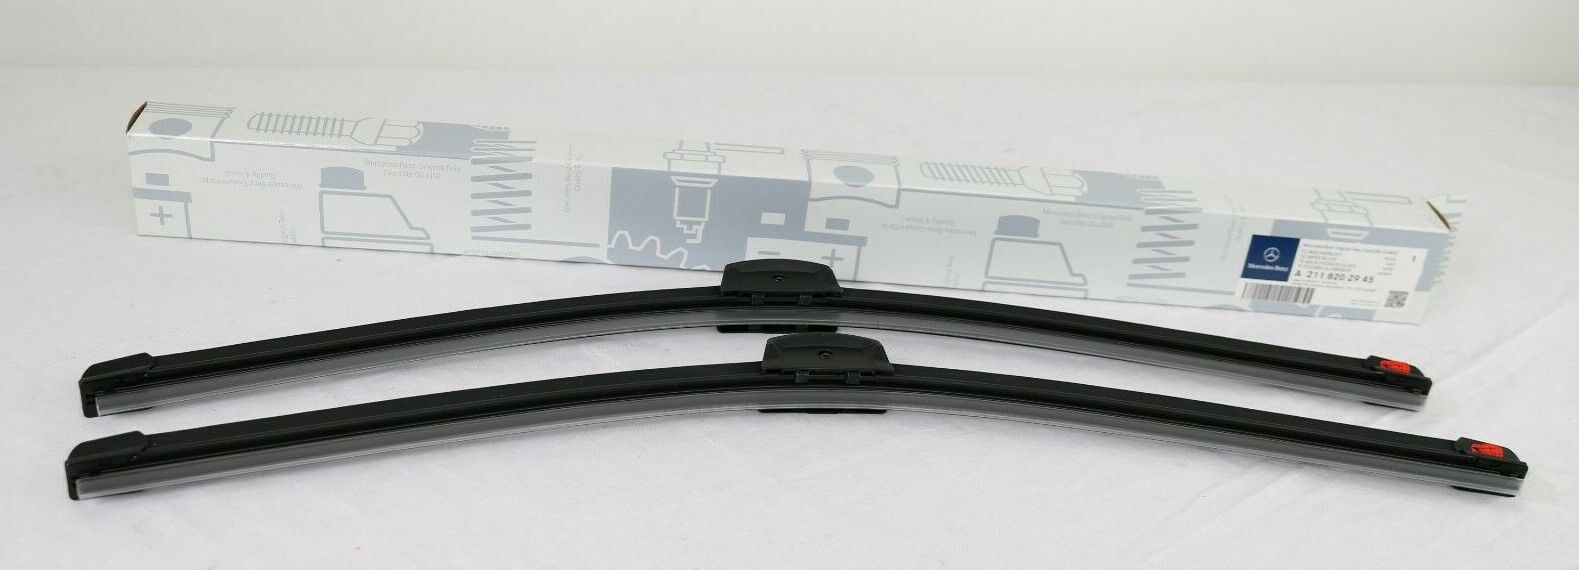 Silicone HT Ignition Lead Wire Set CELICA 2.0 TURBO ST205 242Bhp UK Model